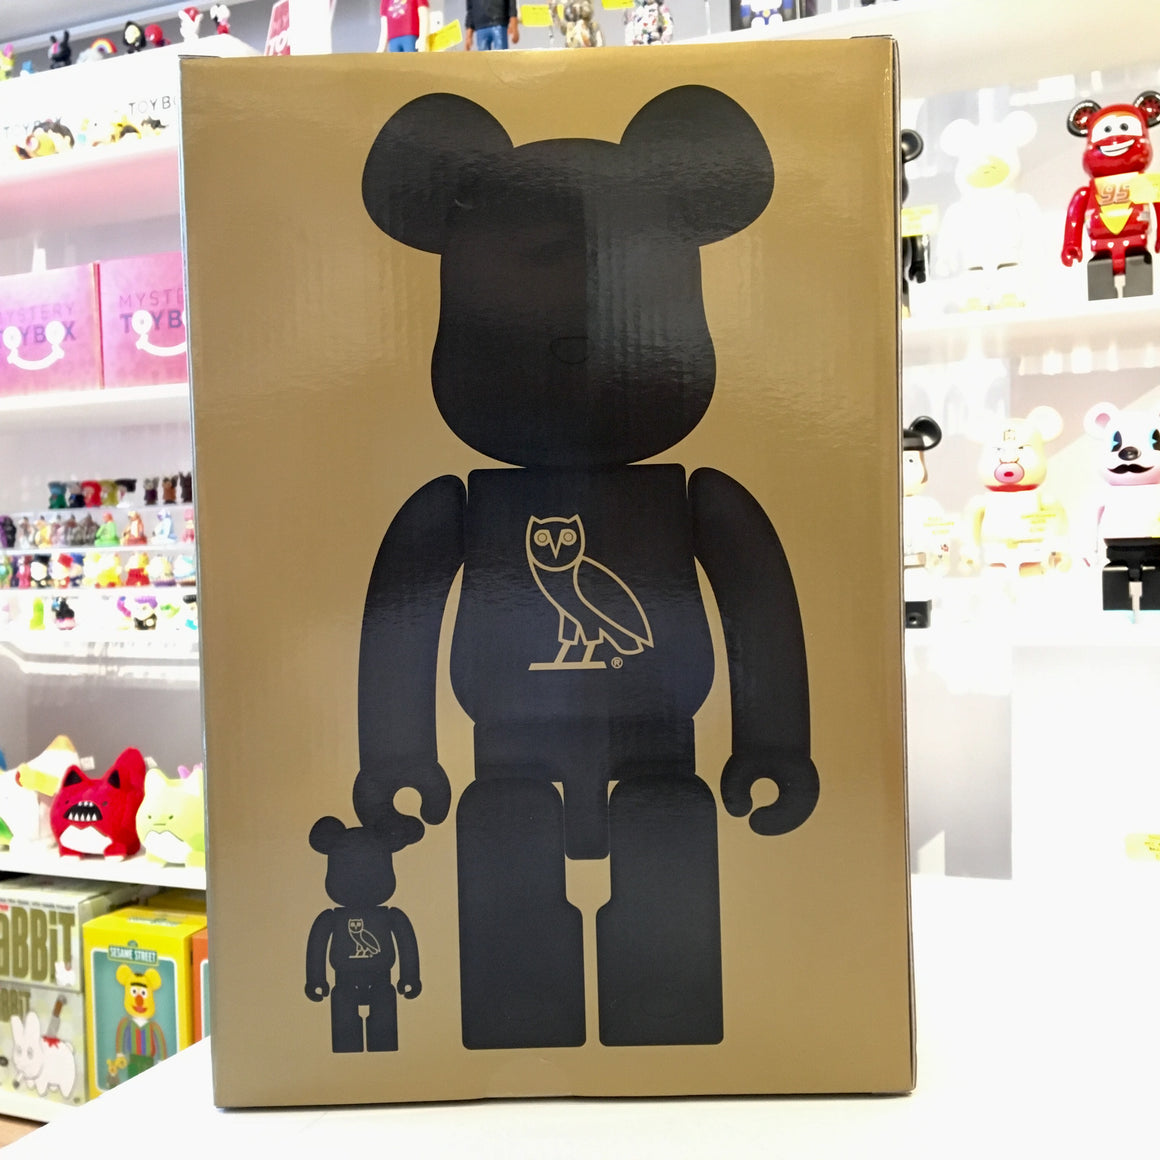 OG OWL 400% Bearbrick by OVO x Medicom Toy